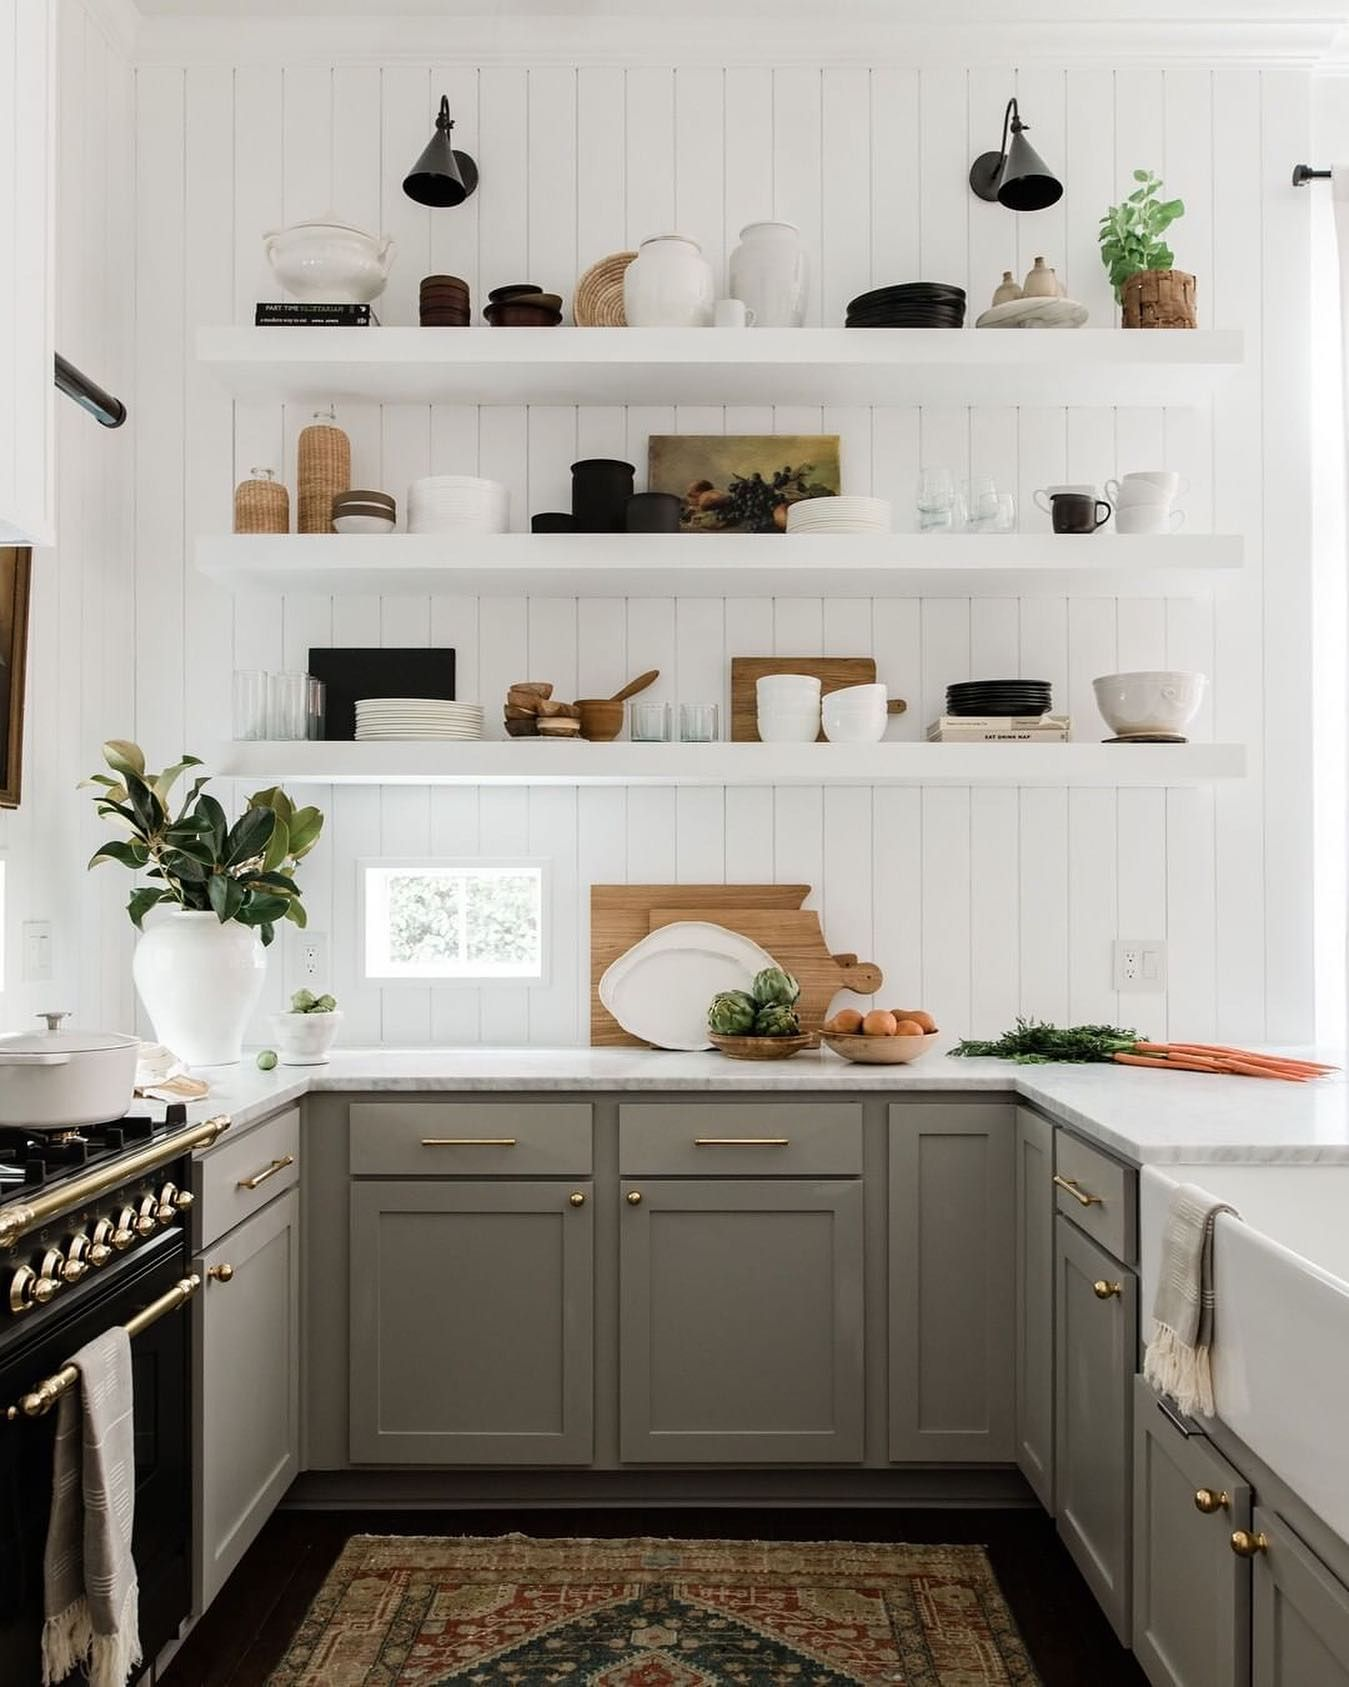 Greige Greige Paint Color Clare In 2020 Country Kitchen Diy Kitchen Renovation Kitchen Renovation